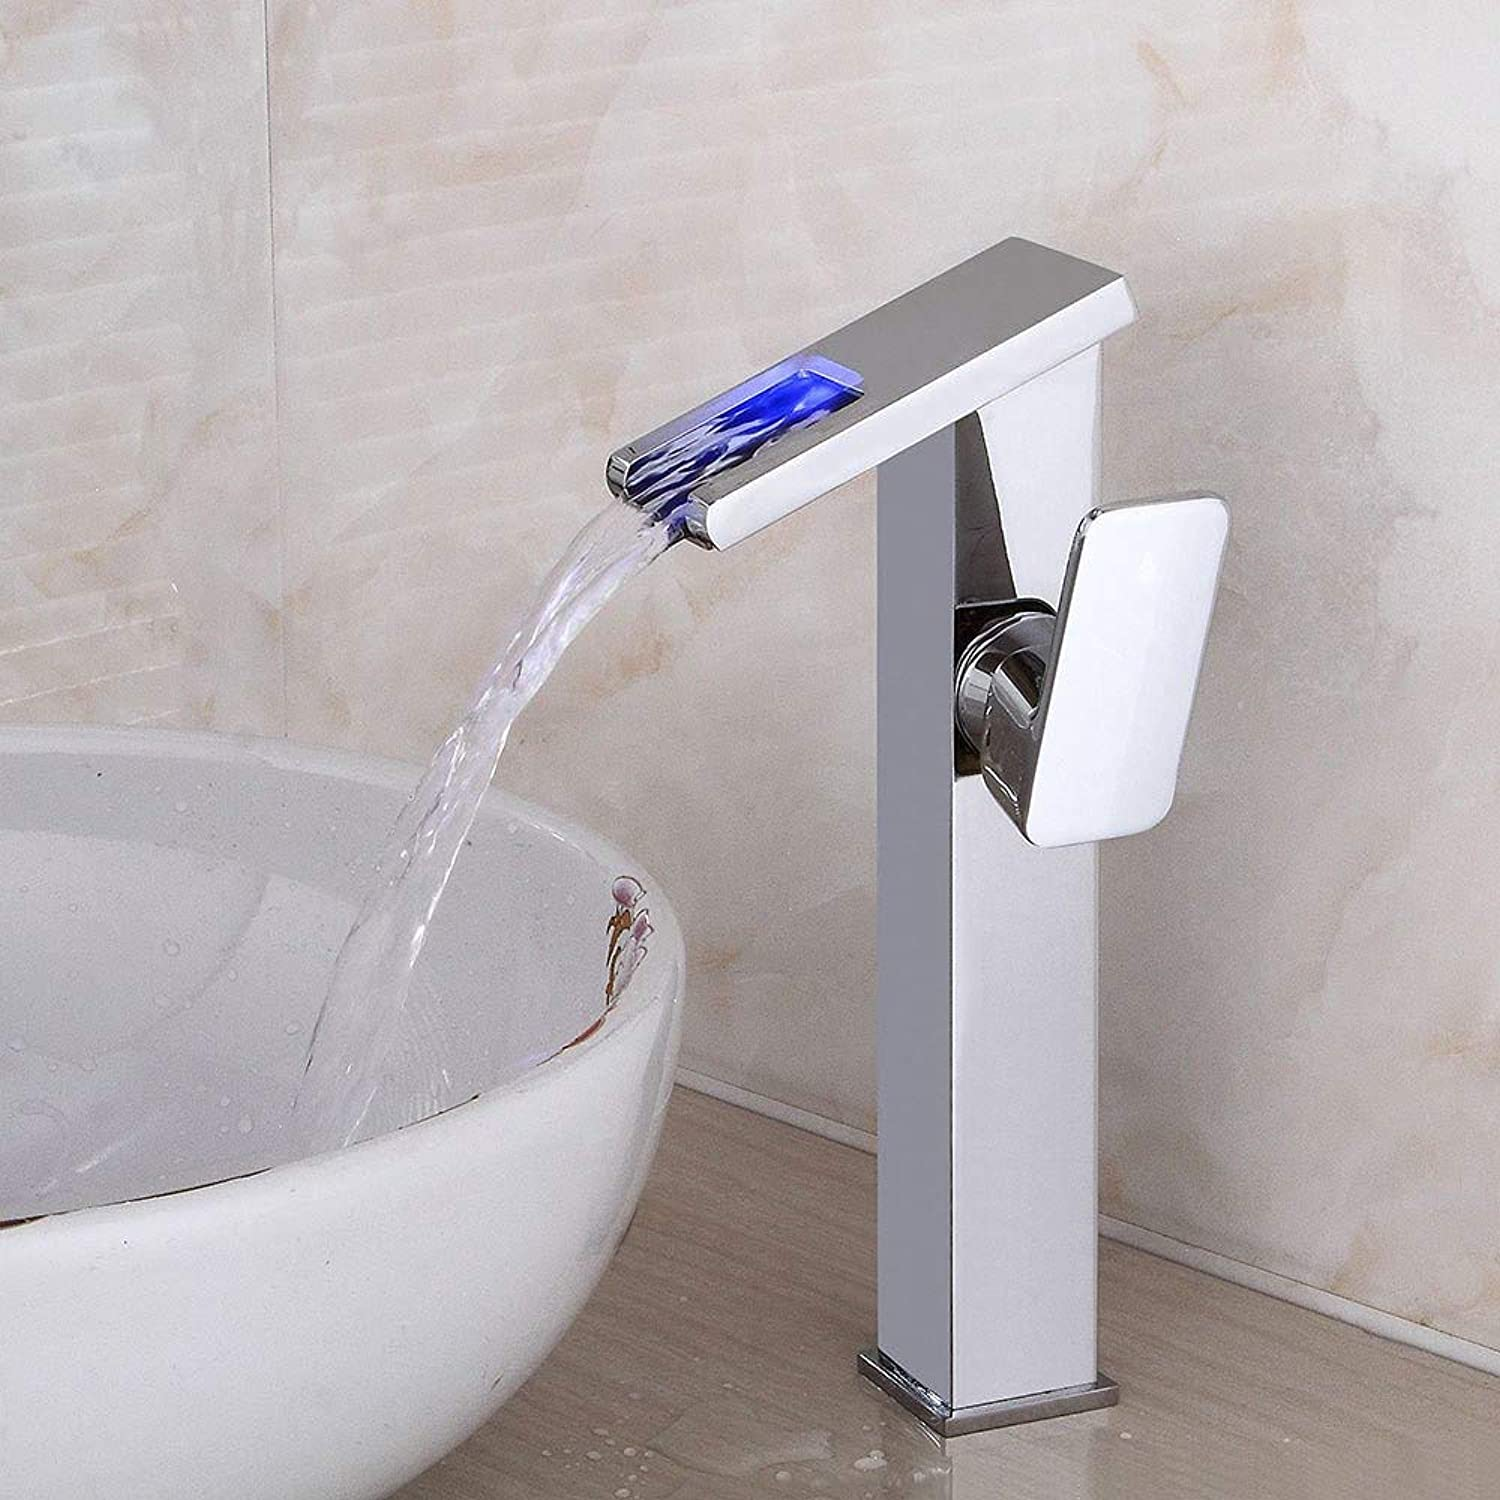 Chrome-Plated Brass Kitchen Faucet Led Waterfall Faucet Above Counter Basin Hot and Cold Faucet Bathroom Single Hole Copper Faucet